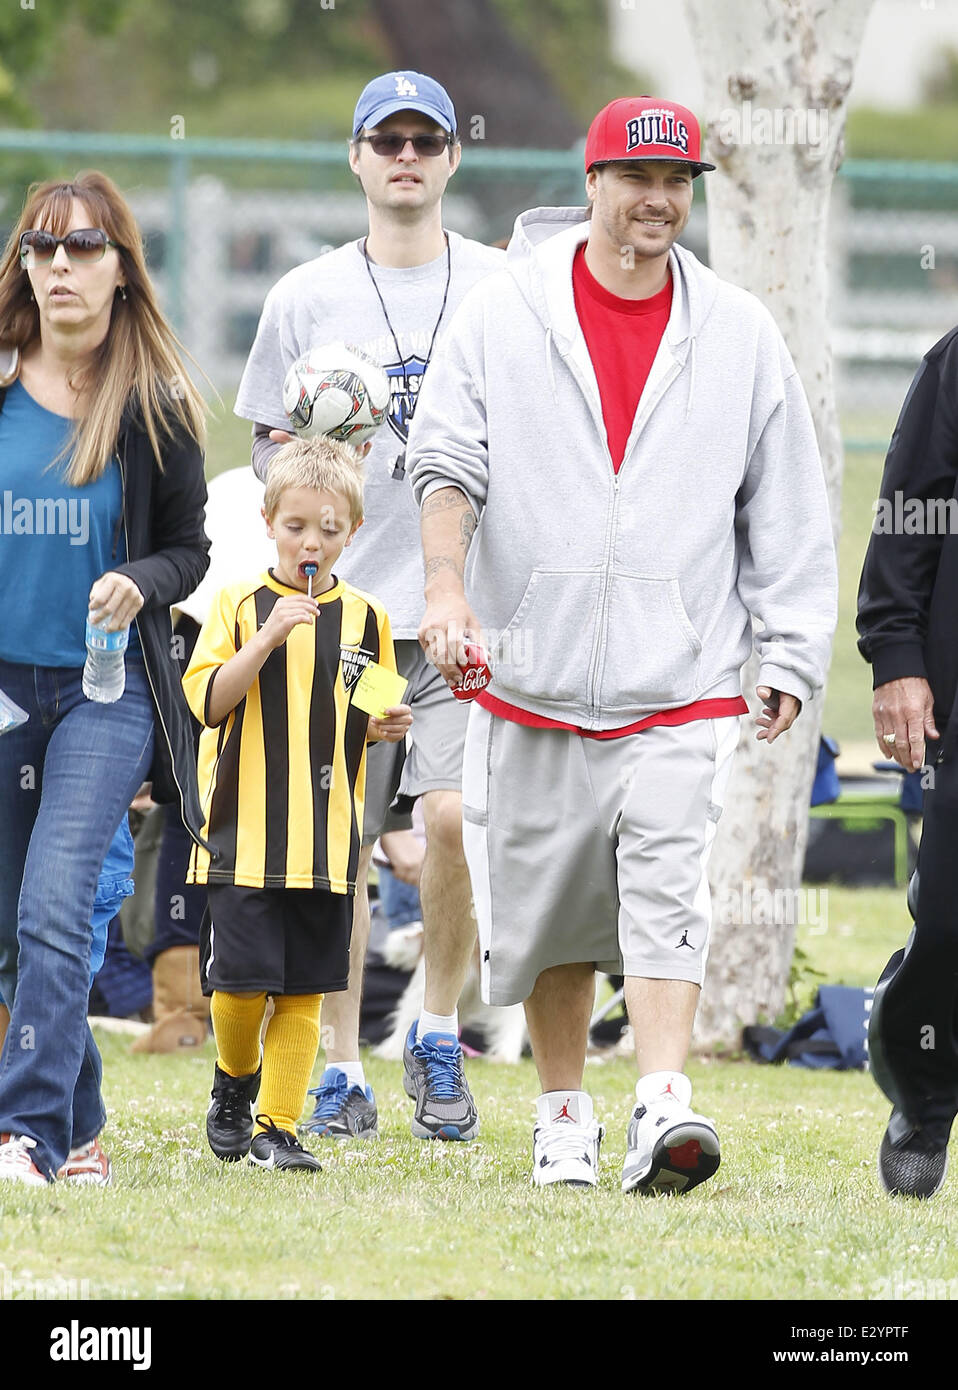 Britney Spears At Her Children S Soccer Game With Her Father And Stock Photo Alamy